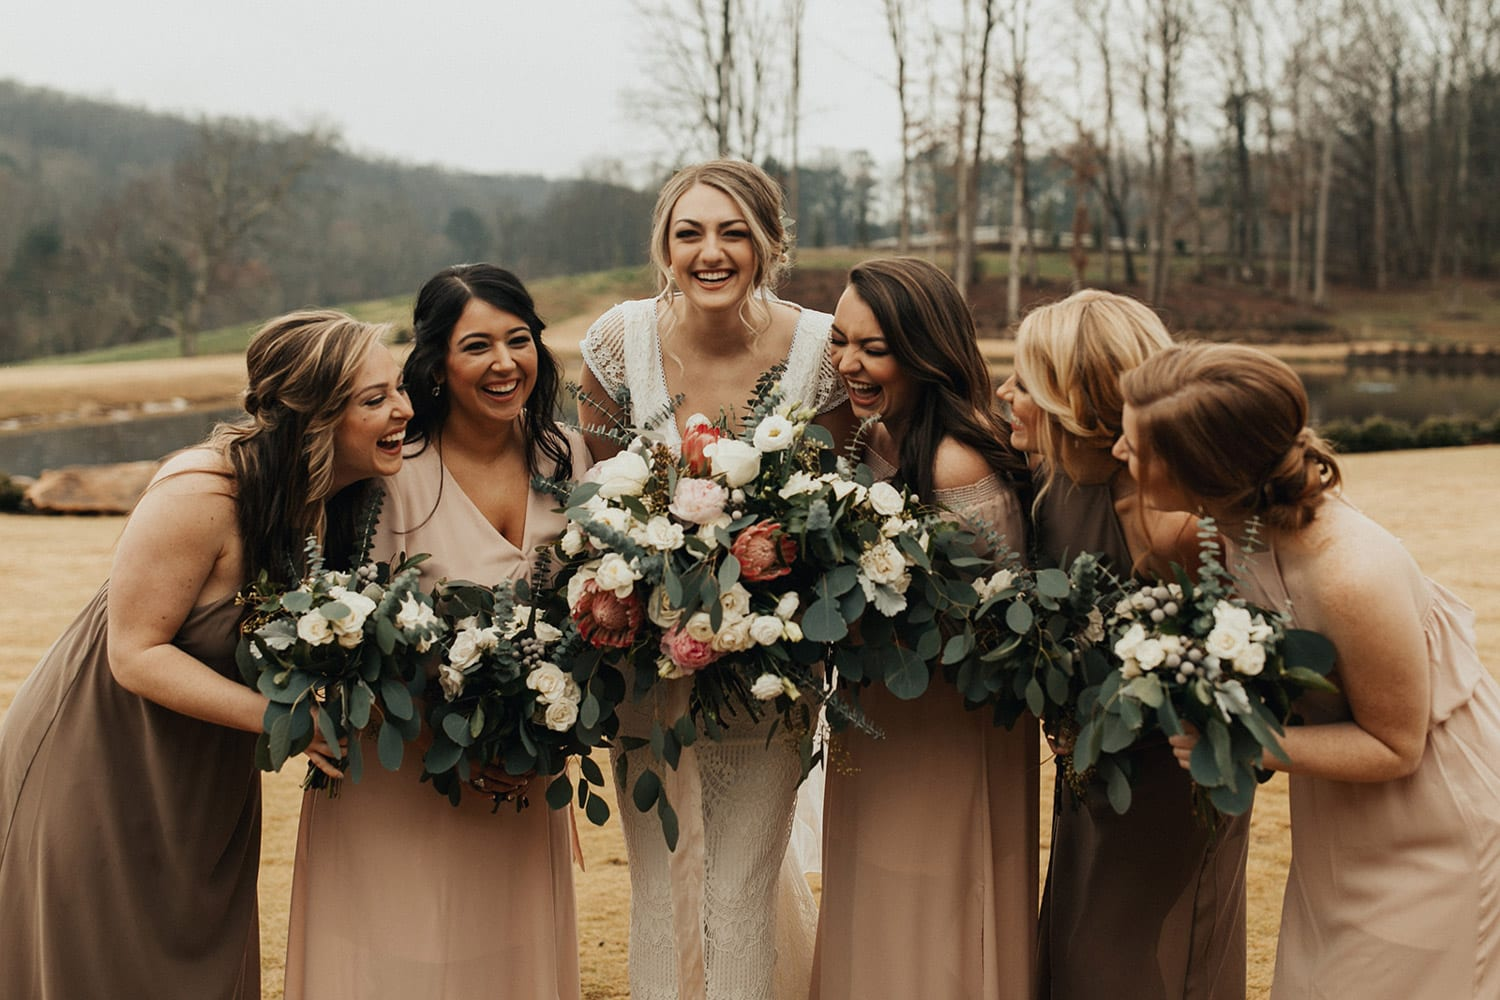 Bride and bridesmaids pose with flowers in front of water